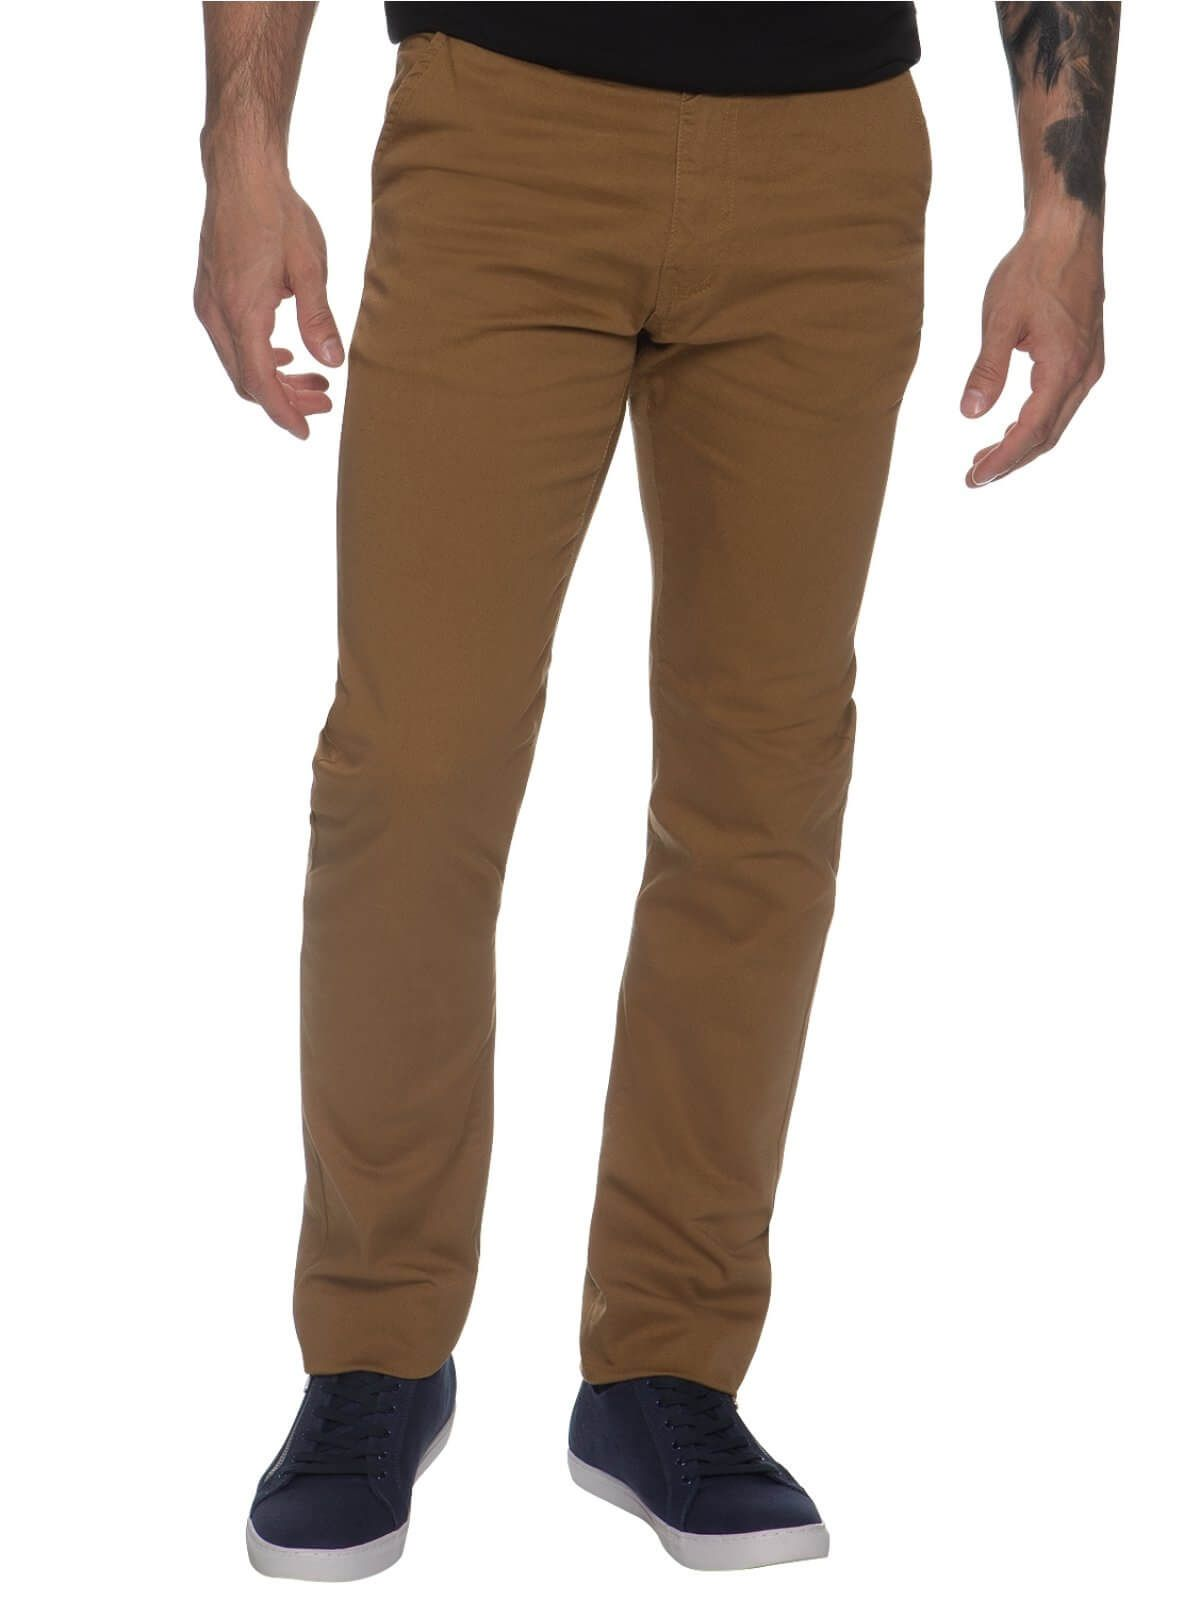 Mens Chinos Slim Fit Stretch Jeans | Enzo Designer Menswear